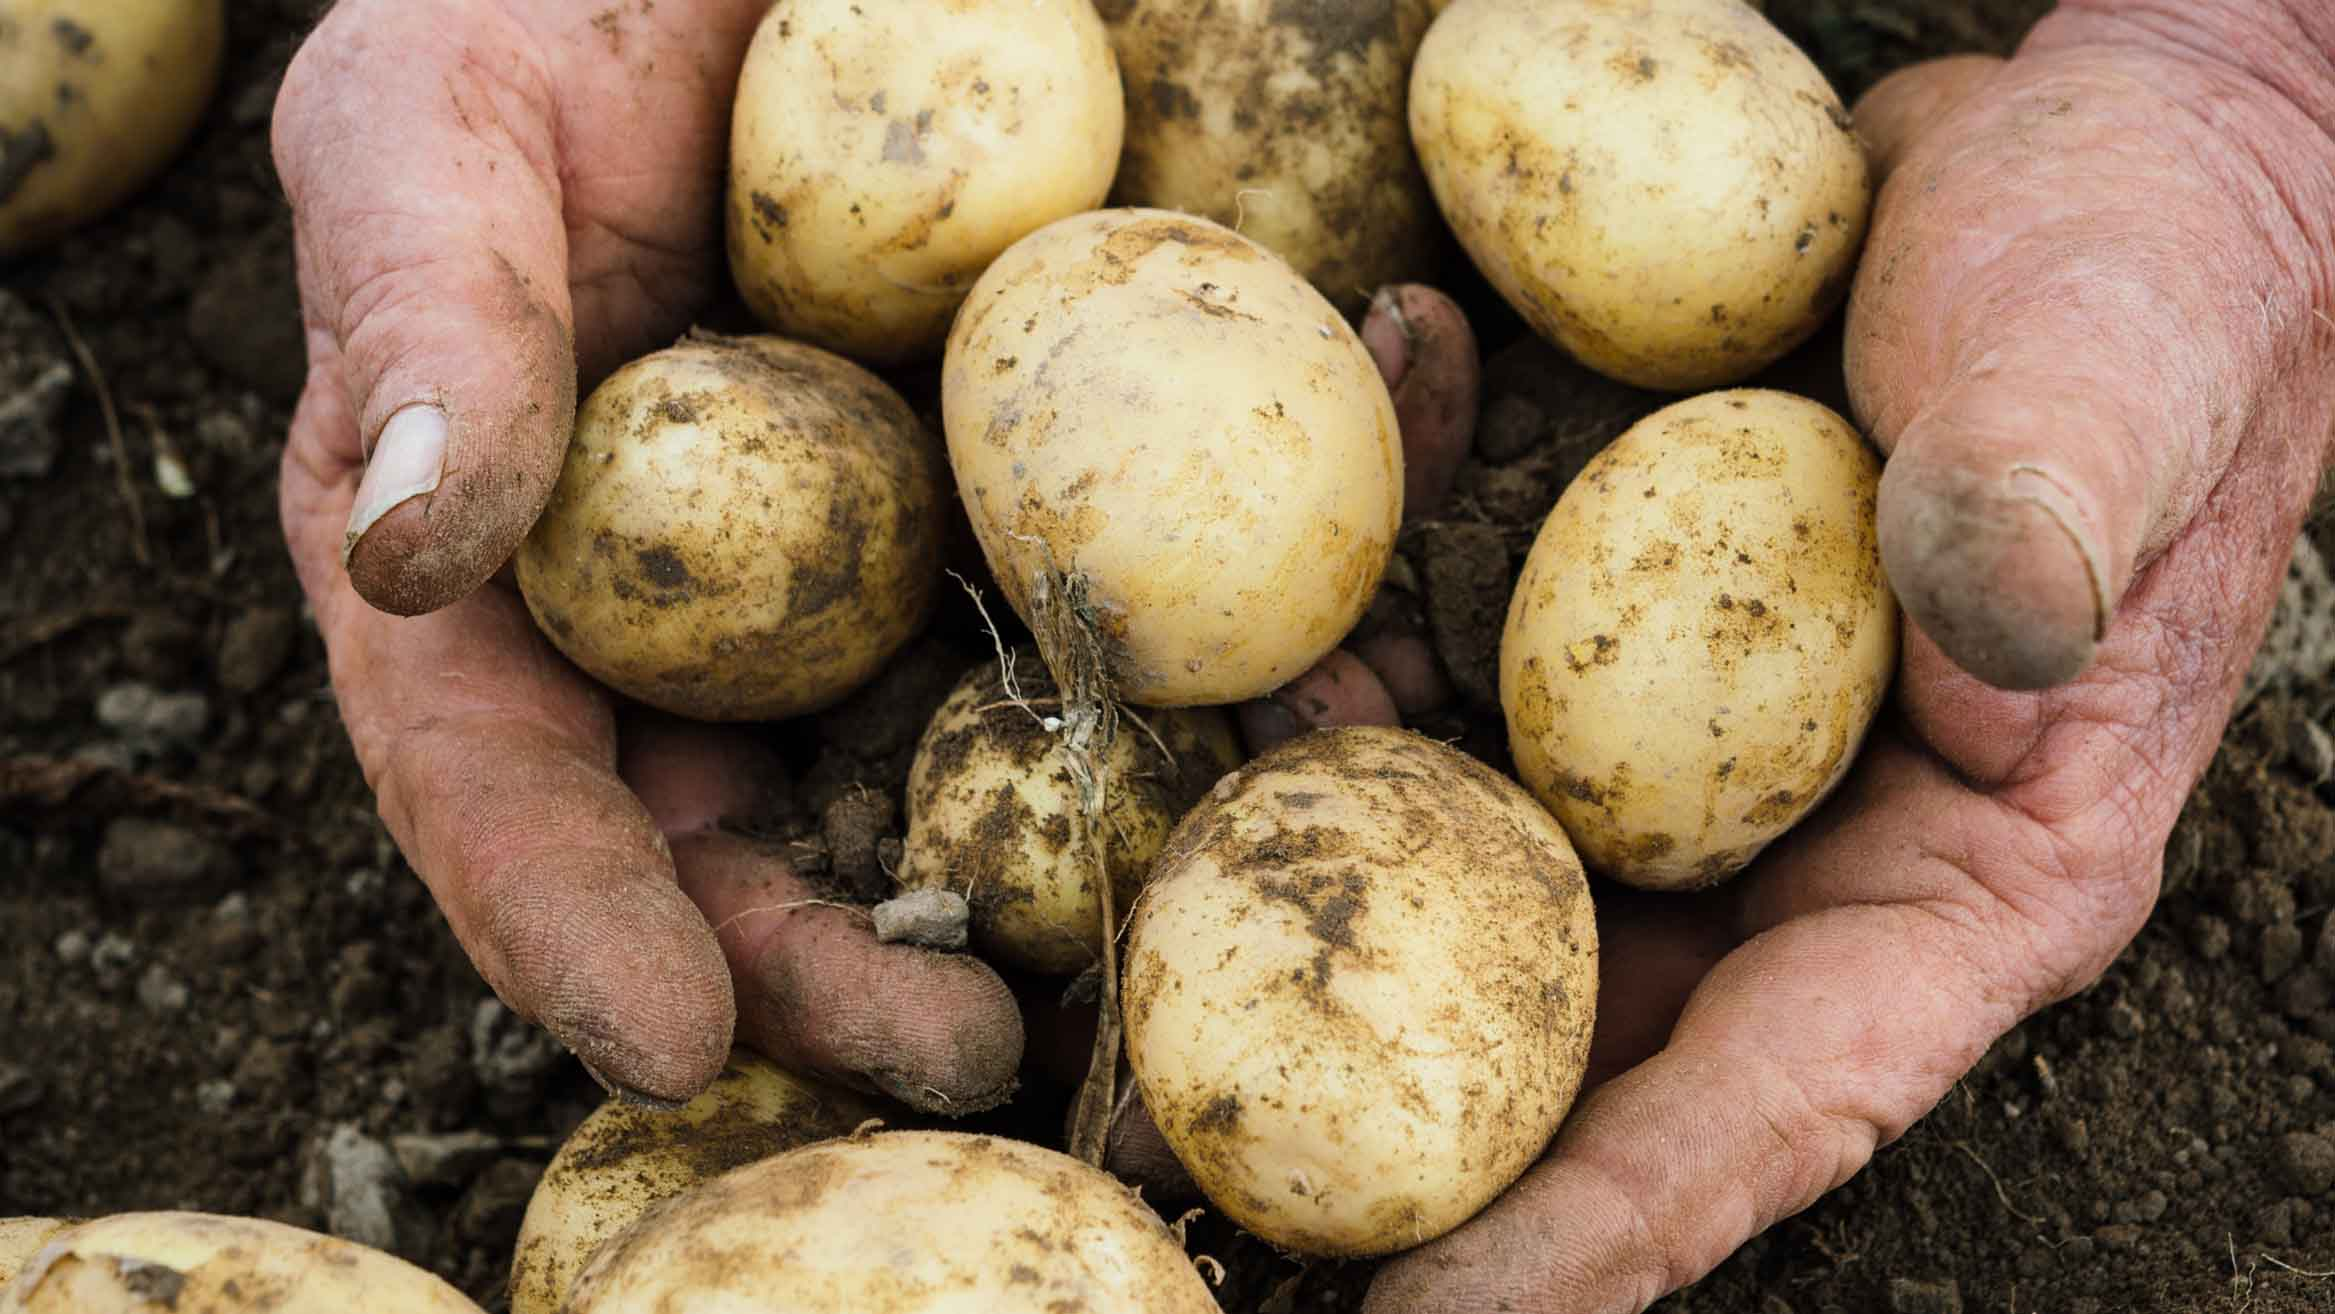 Potato market sees strong start to the new year